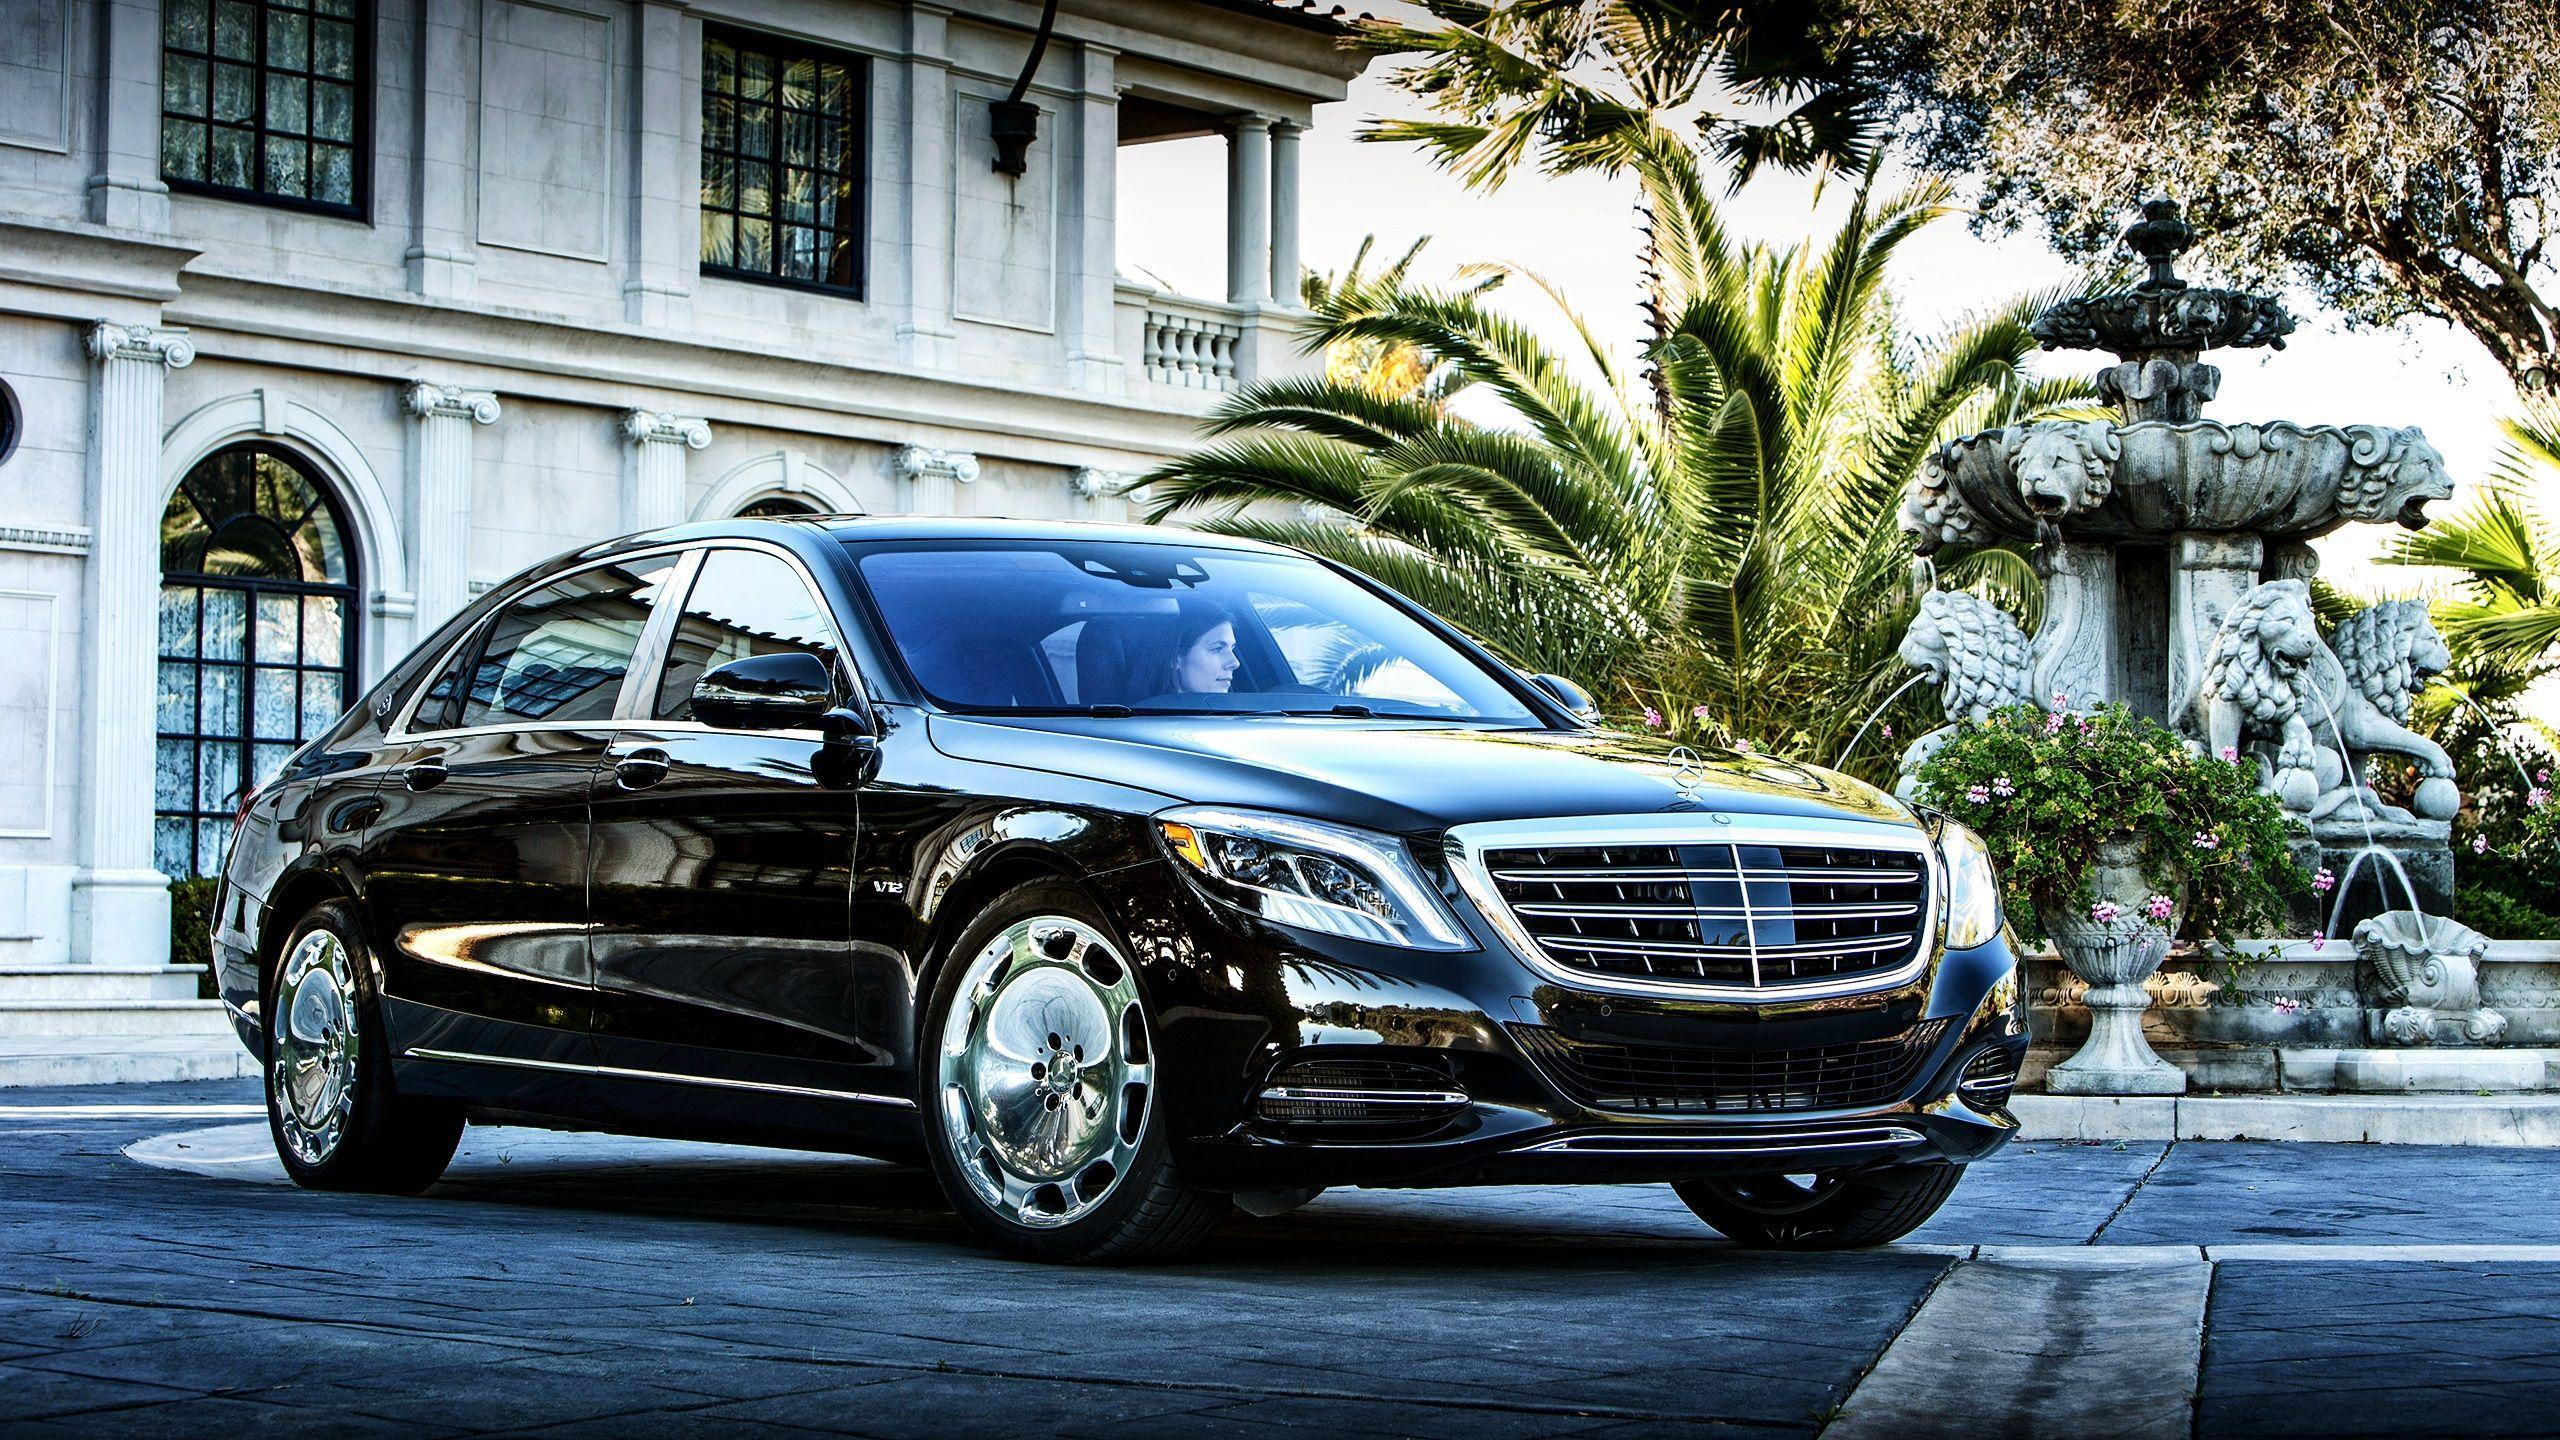 Maybach Wallpapers   Top Maybach Backgrounds   WallpaperAccess 2560x1440